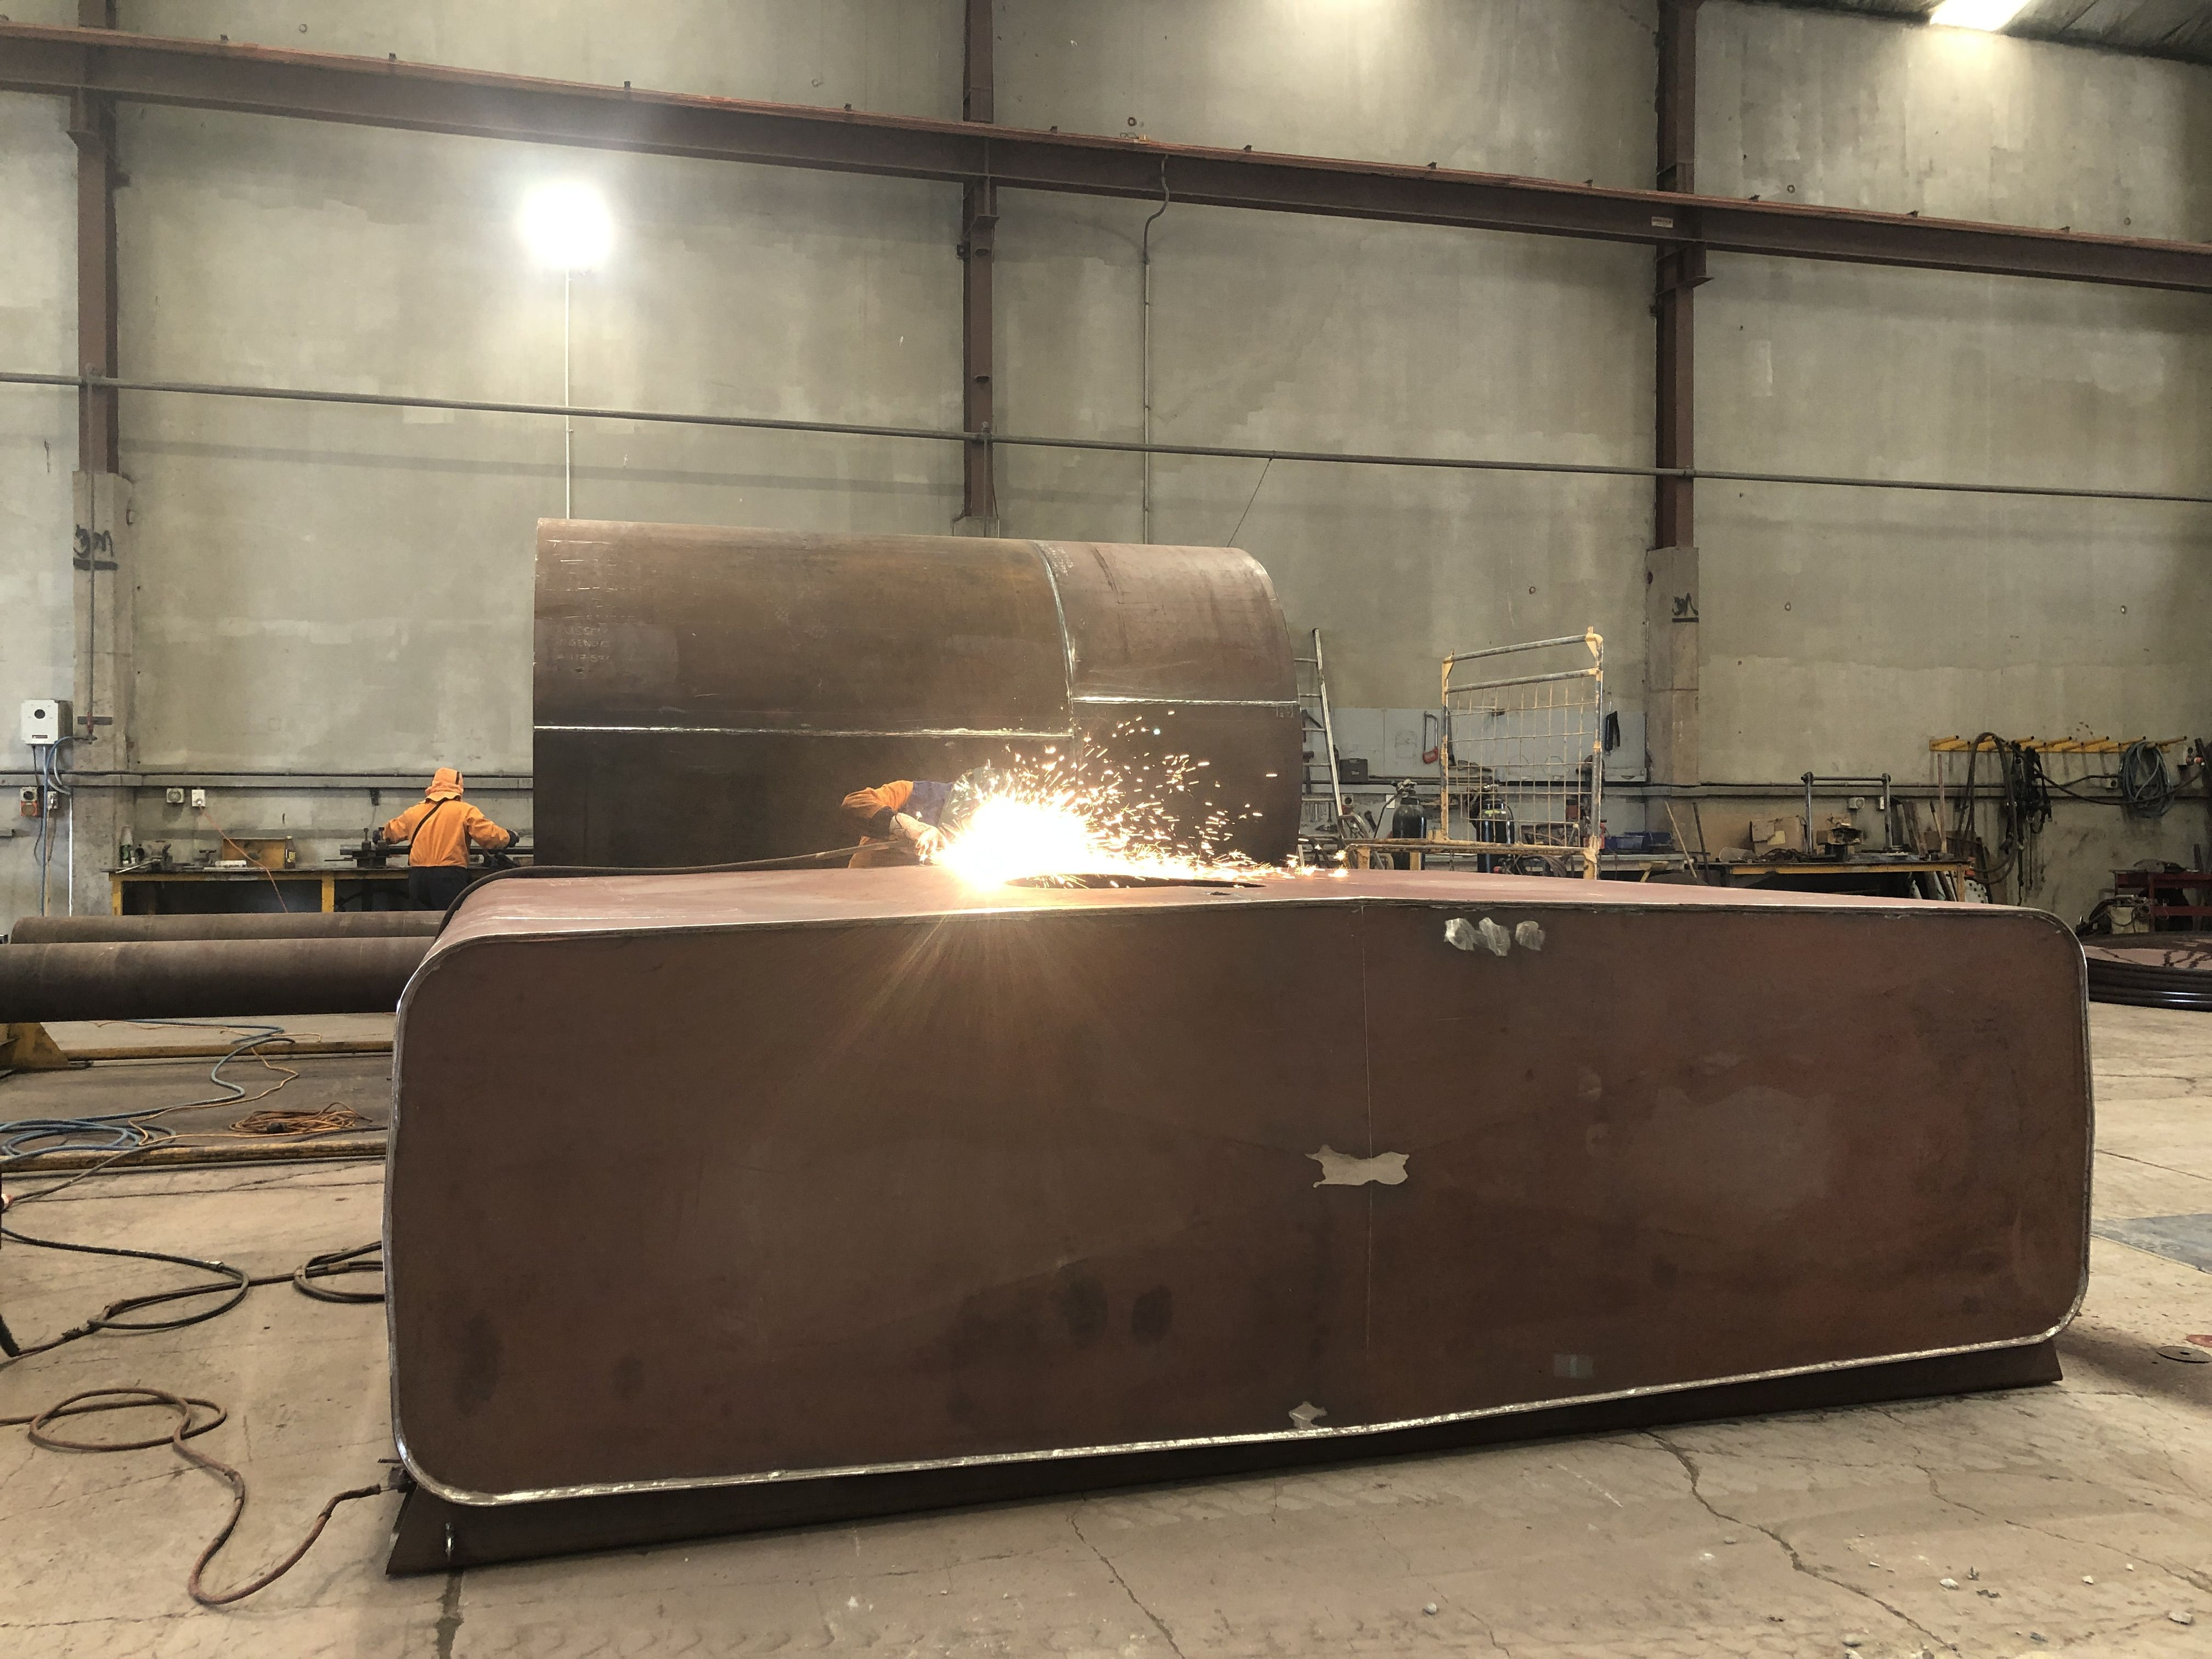 Custom Projects Here Is Our Welder Ivan Working On A Custom Waste Oil Tank For Mb Century Fuelchief Work On A Variety Of P In 2020 Fuel Storage Propane Tank Art Fuel